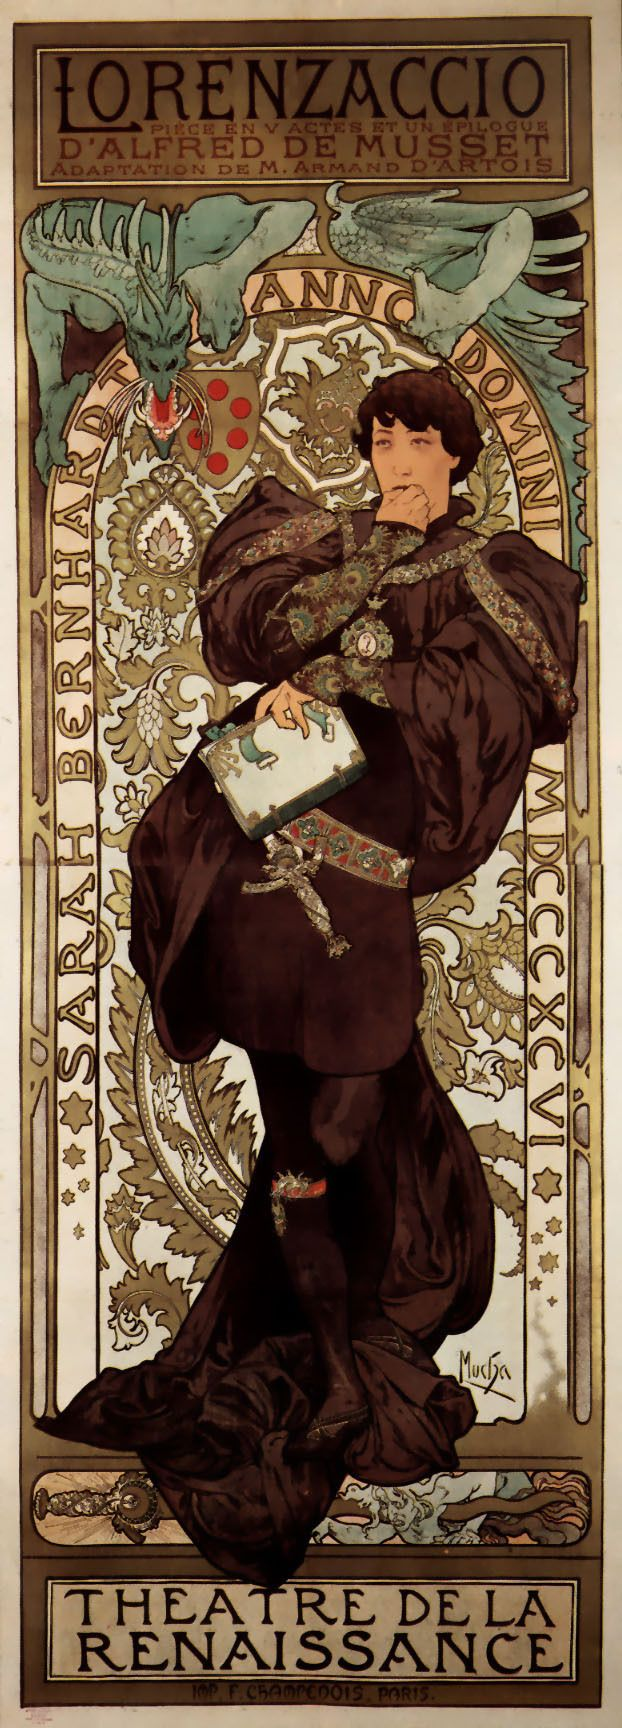 Alphonse Mucha's poster for the 1896 premiere, in which the title role was played by Sarah Bernhardt